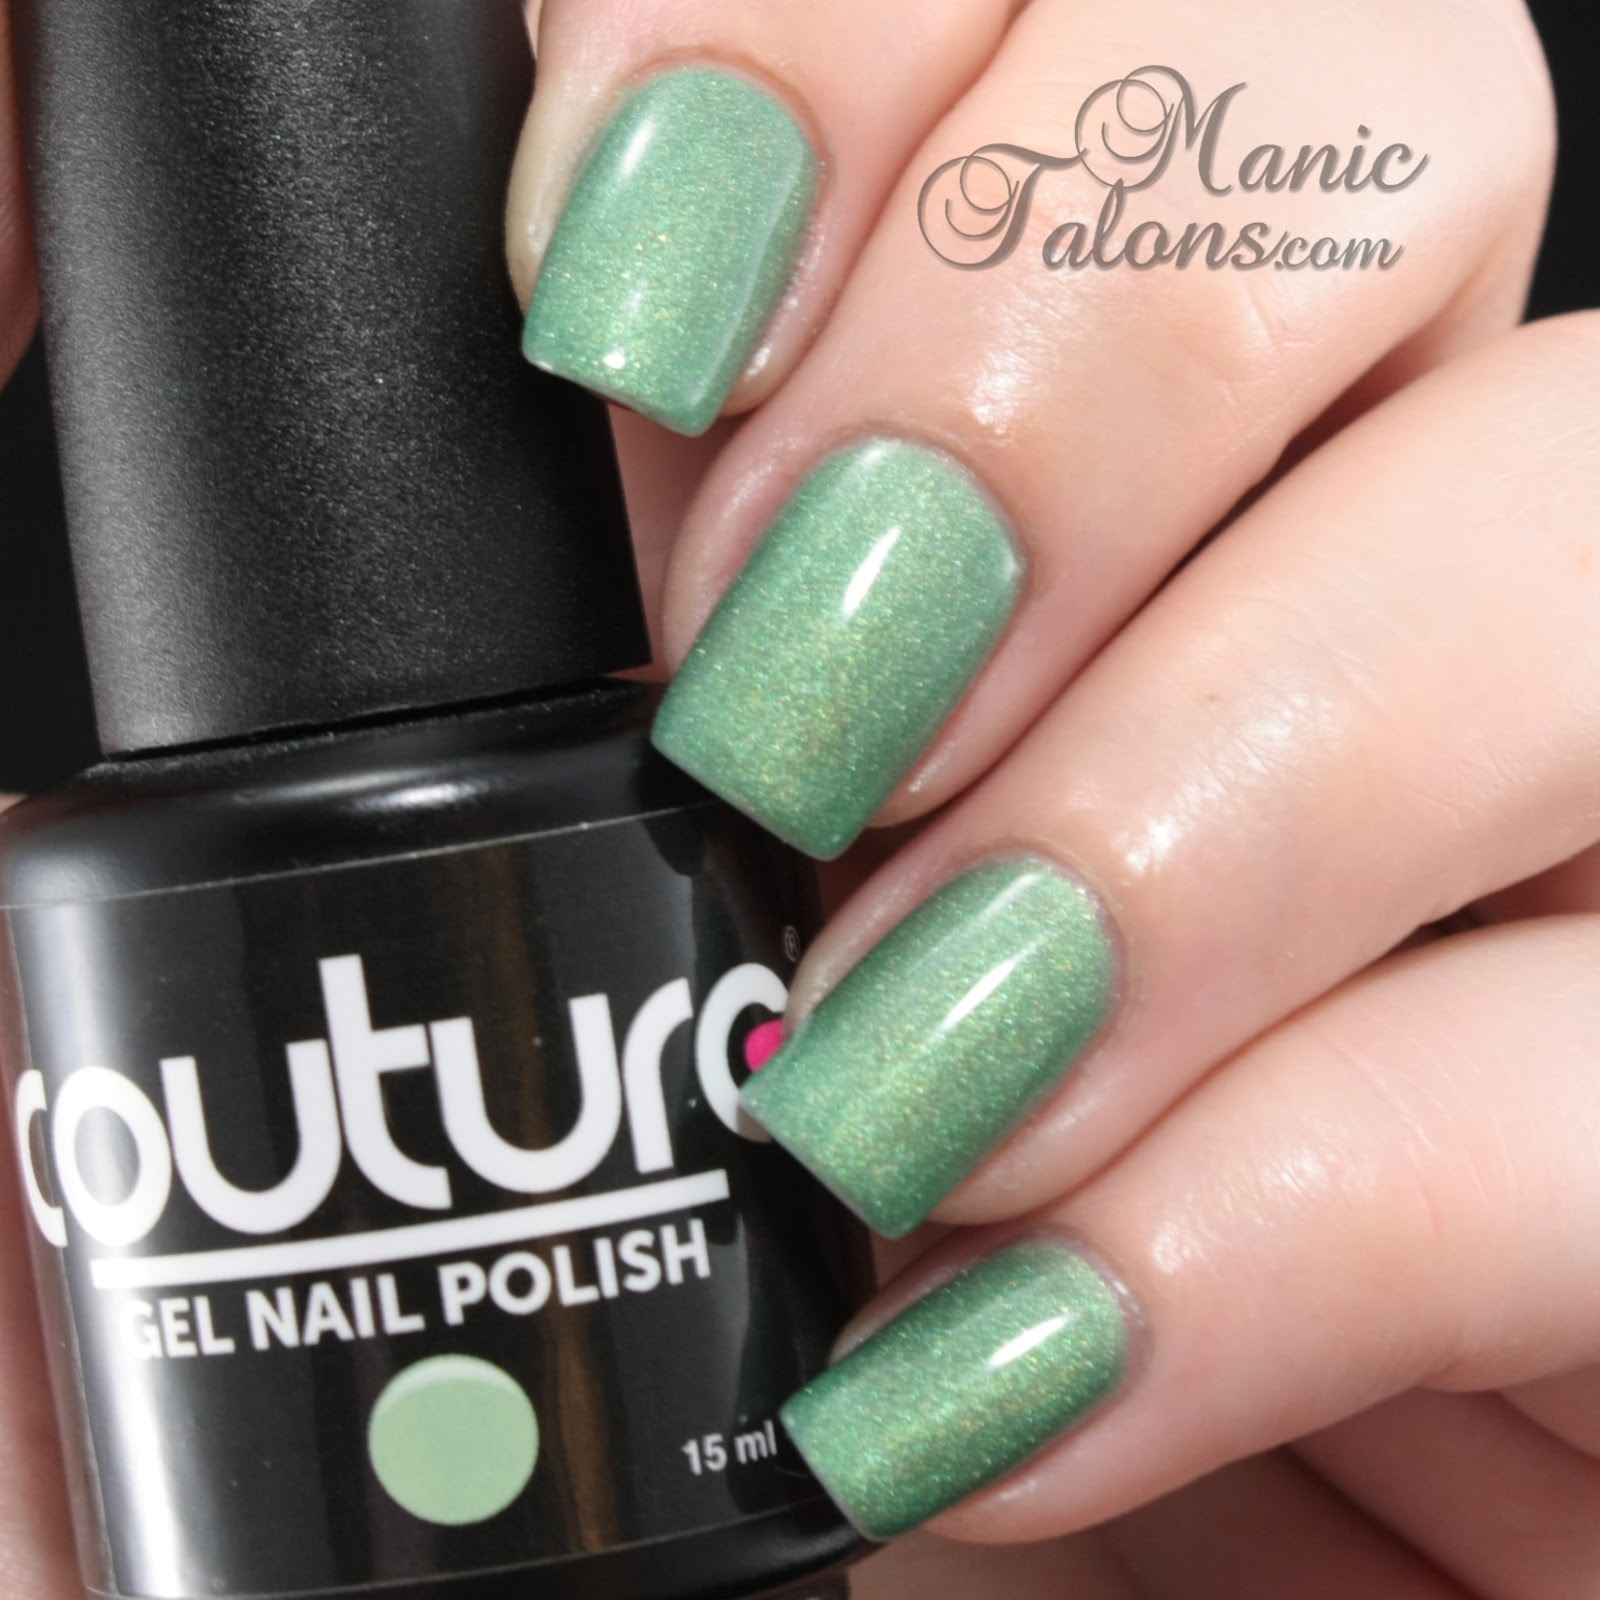 Couture Soak Off Gel Polish Aloe Very Swatch